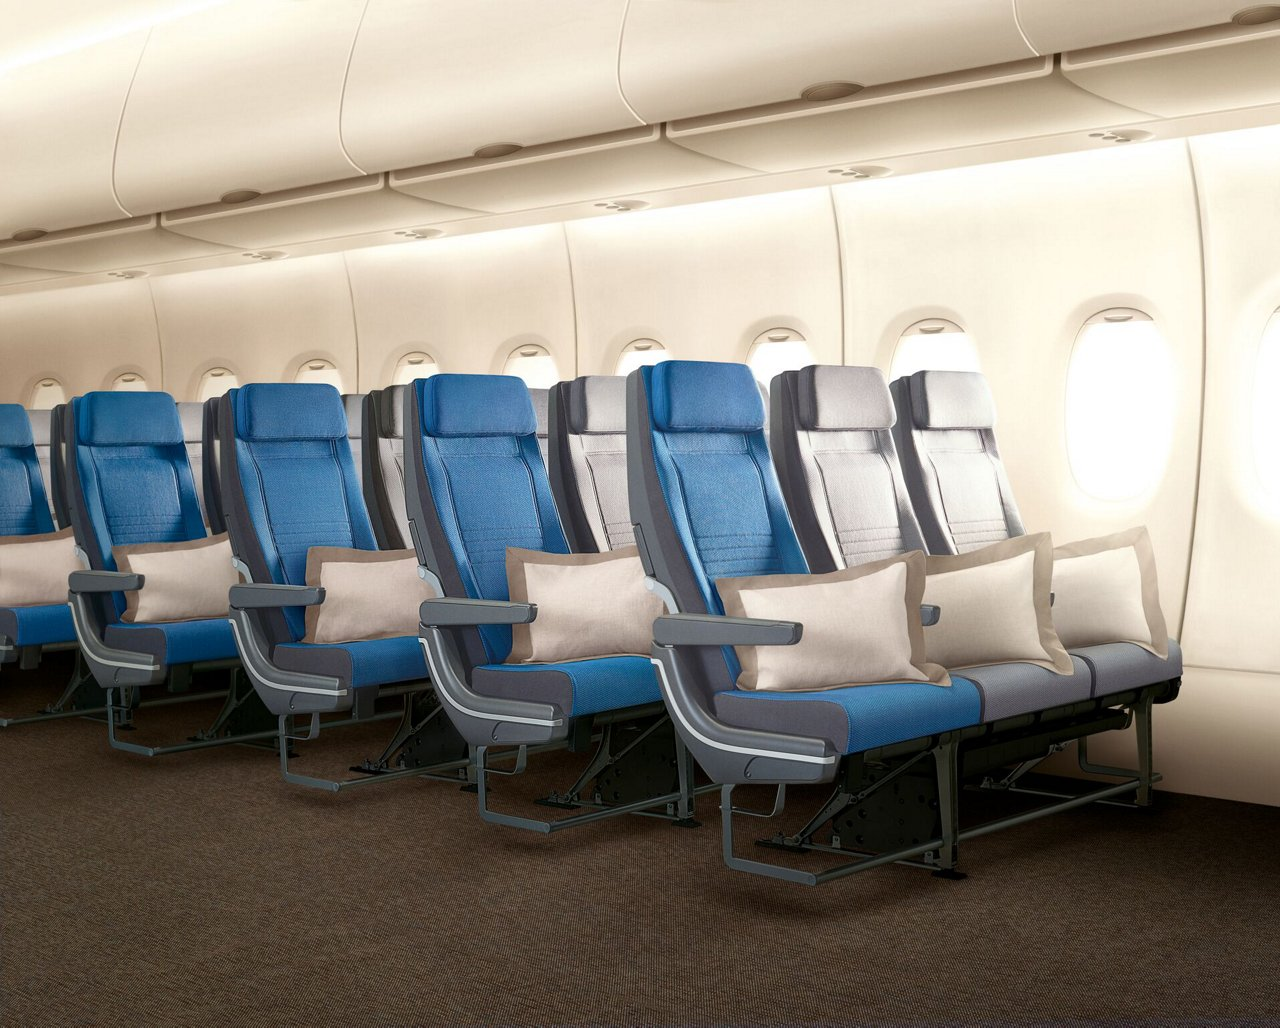 Pictures: The Lufthansa Airbus A380 Business and Economy ...